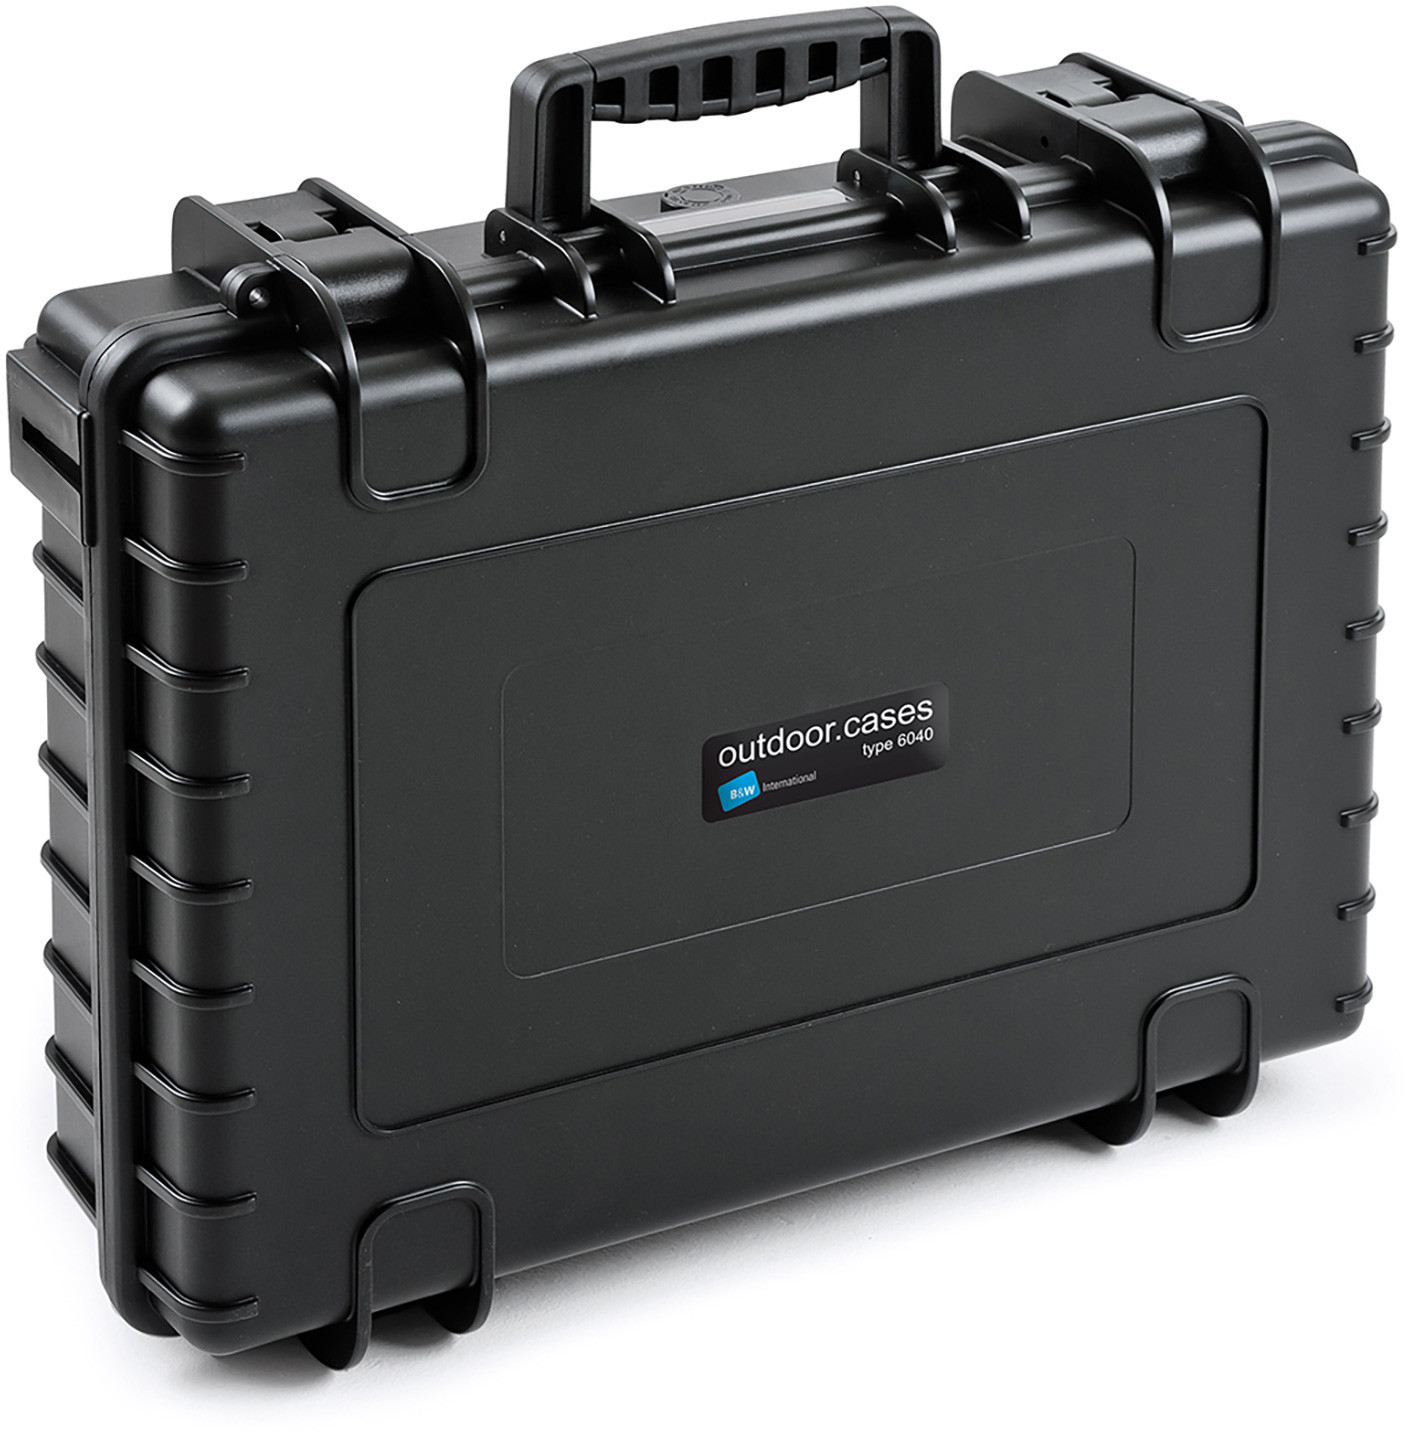 Image of B&W Outdoor Case Typ 6040